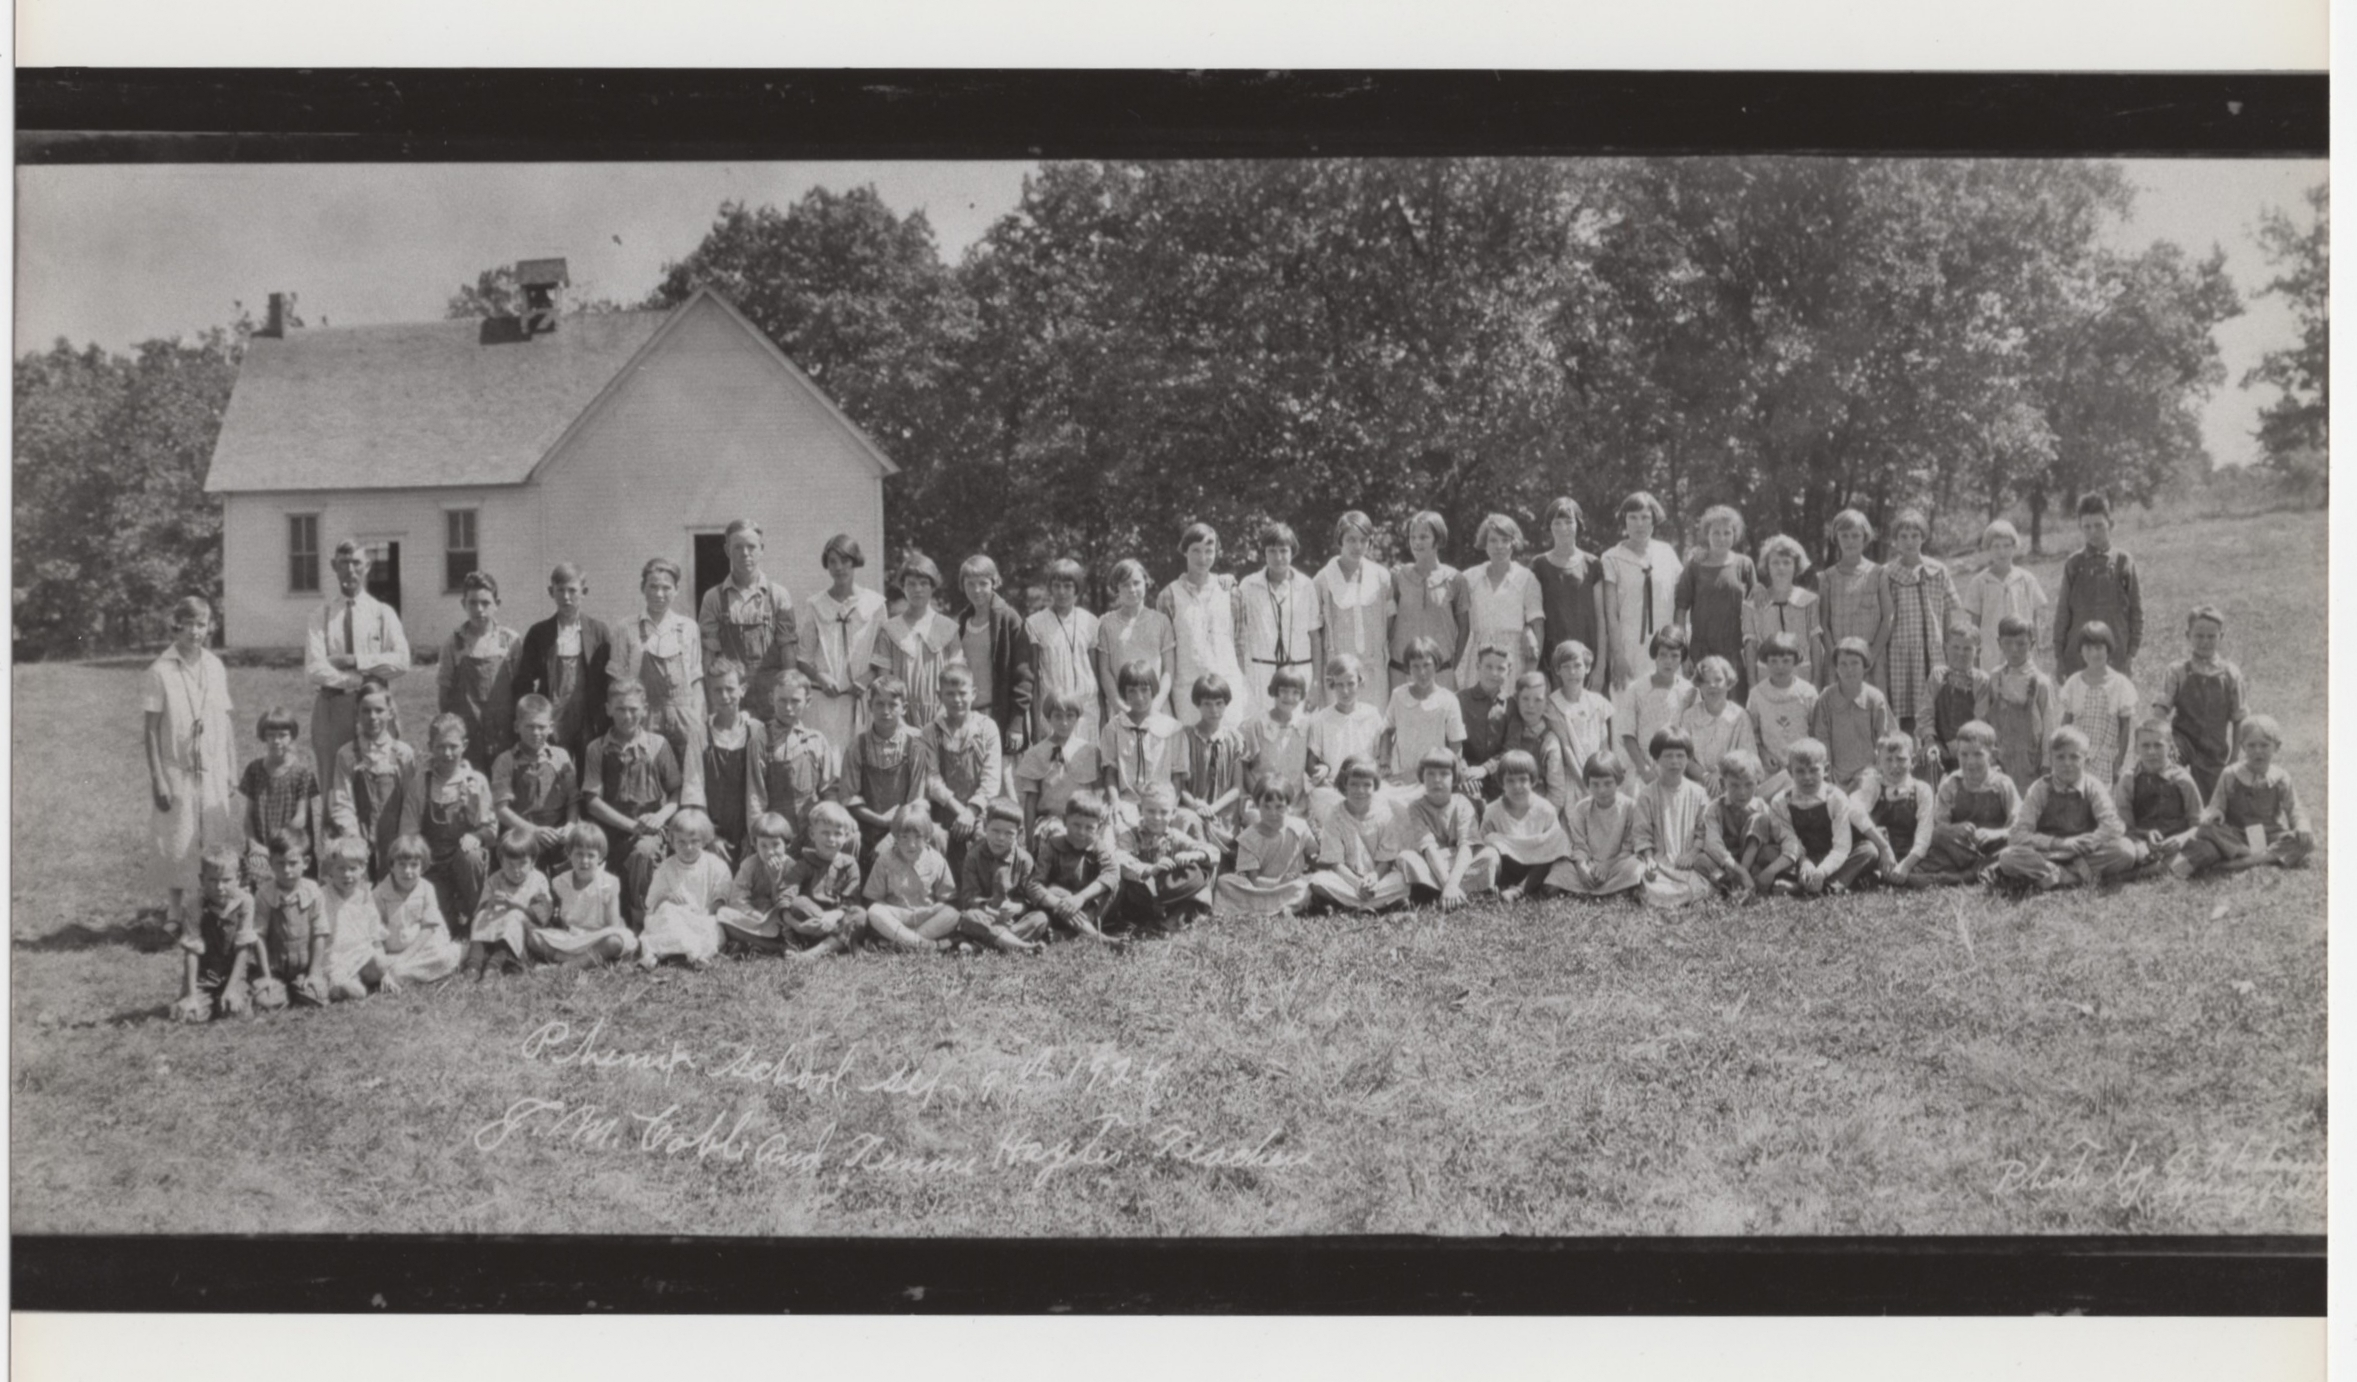 """Phenix School, Sep. 9th 1924 J.M. Coble and Tennie Hagter Teachers (Photo courtesy of Dave Richter)"